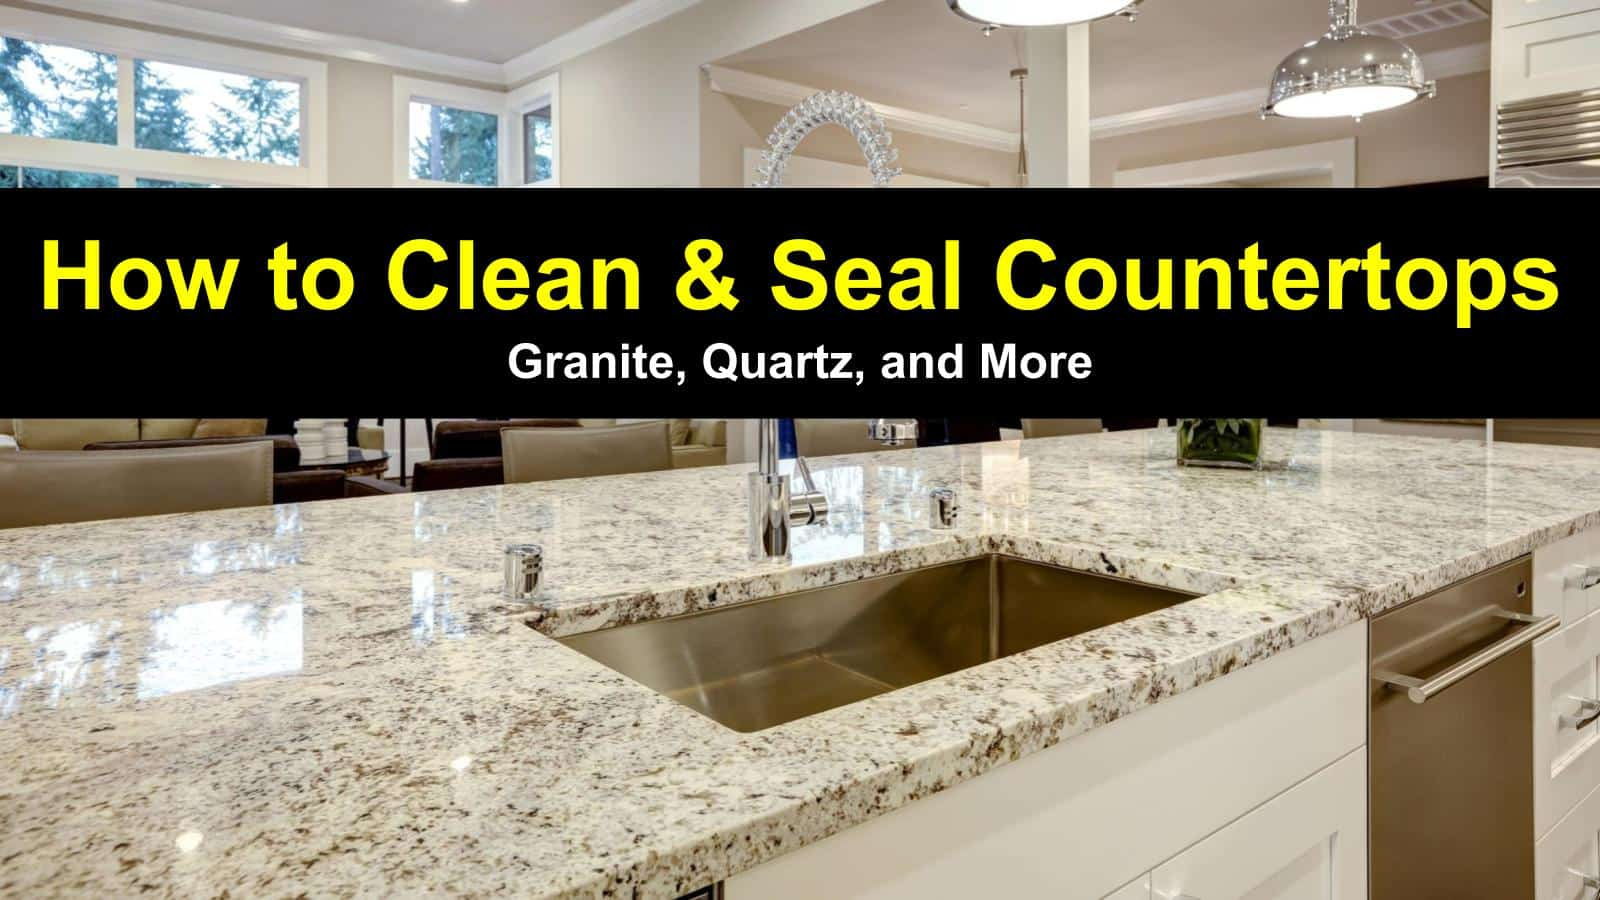 and this camera services cleaning sealing polishing new tile granite countertop clean countertops